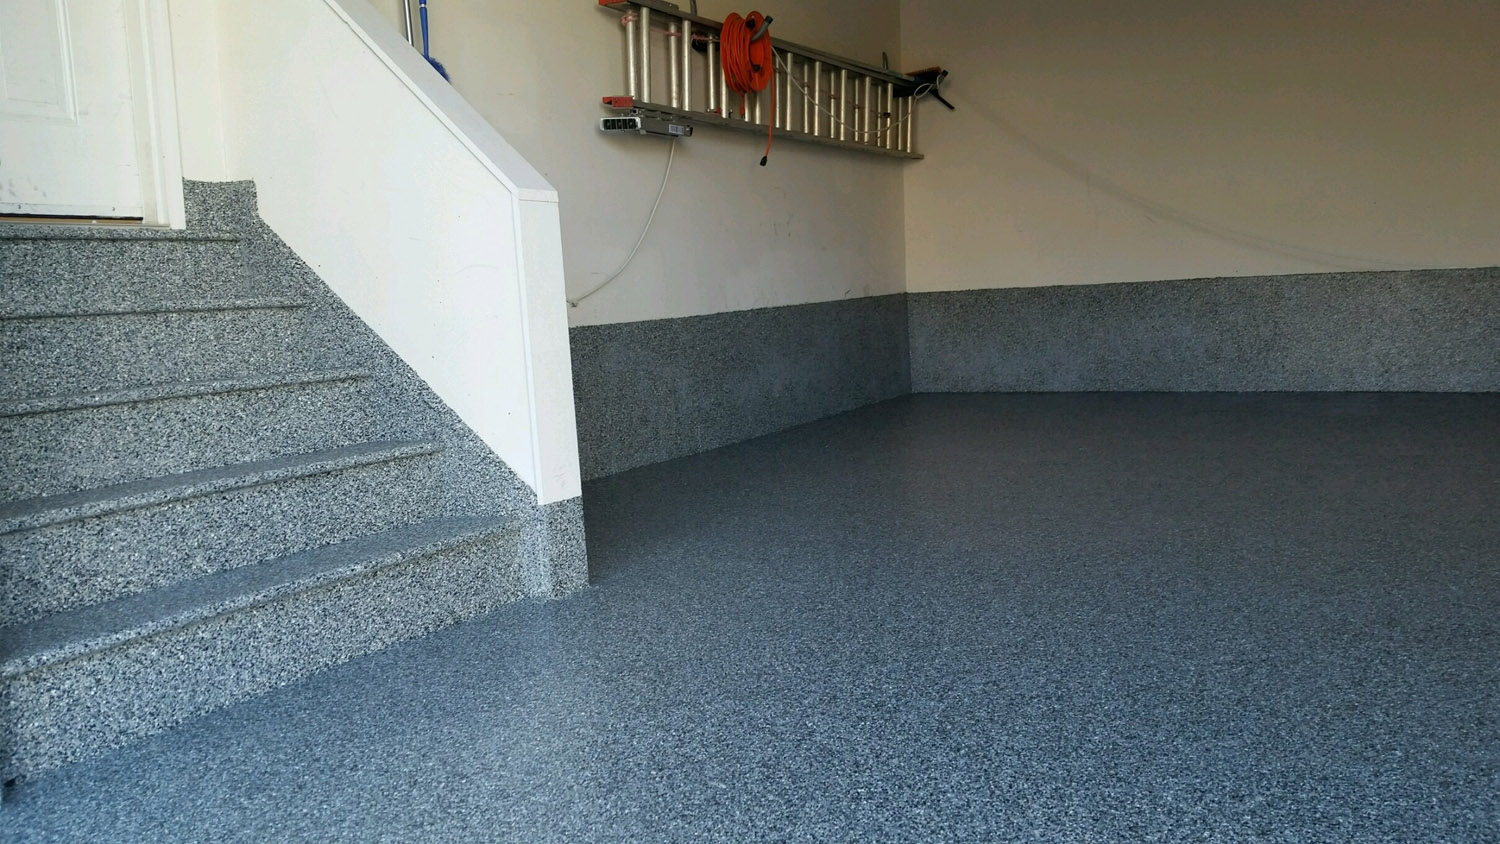 Garage Renovation Solutions: Polyurea Garage Floor - Benefits